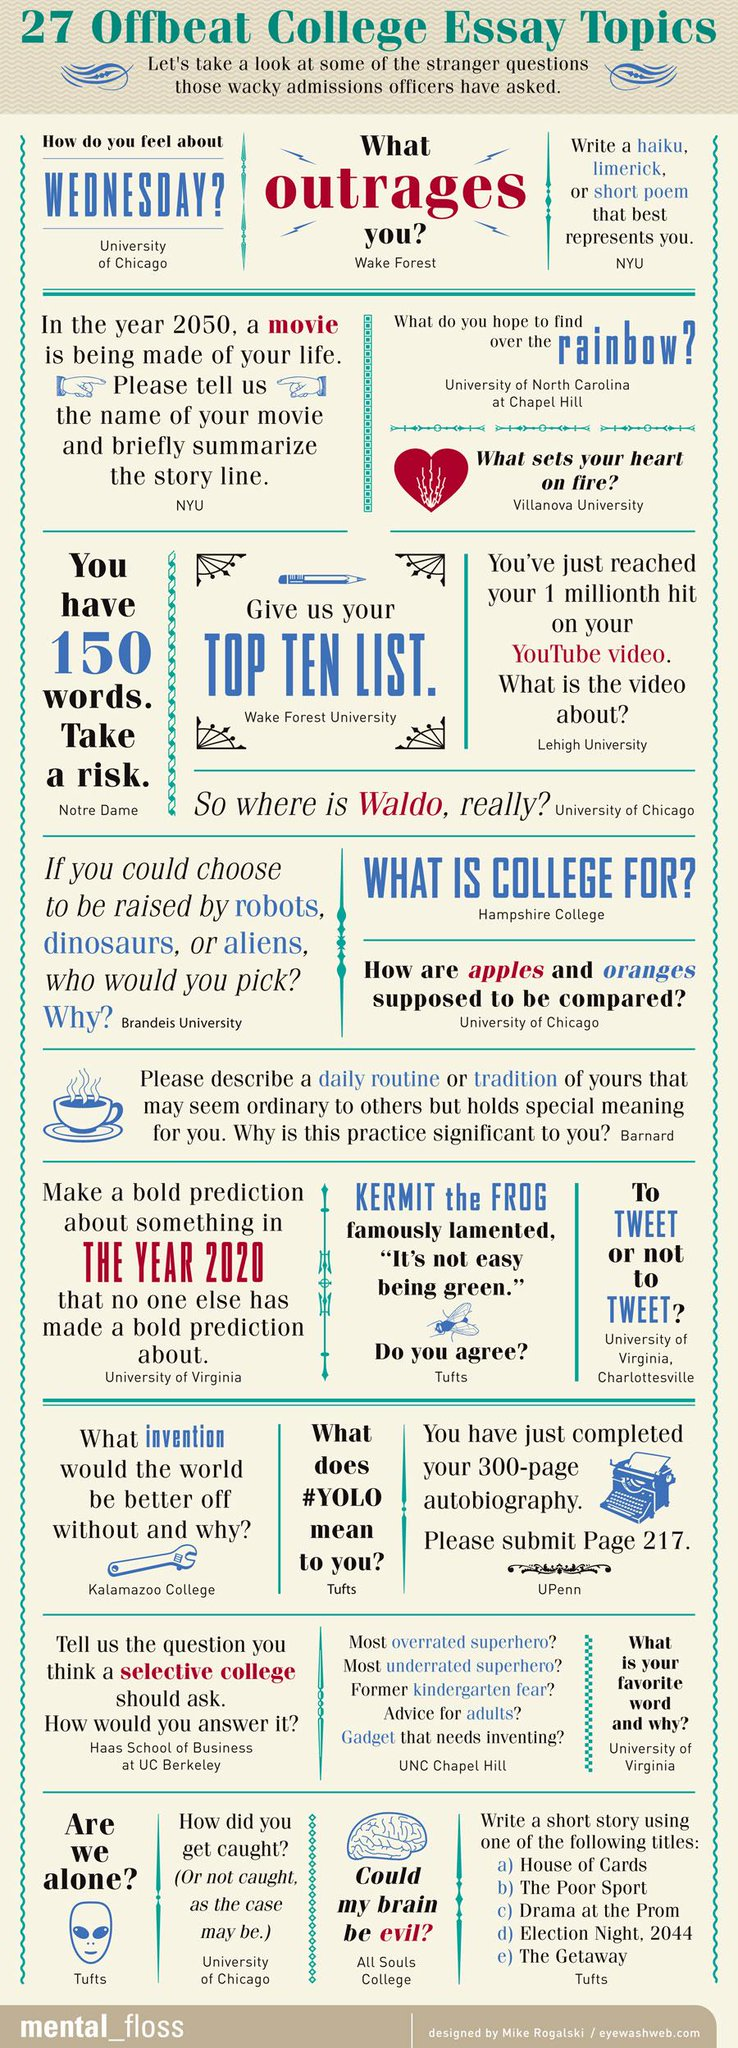 Here are some of the more interesting college essay questions admissions officers have asked. http://t.co/BK8Zs4naTr